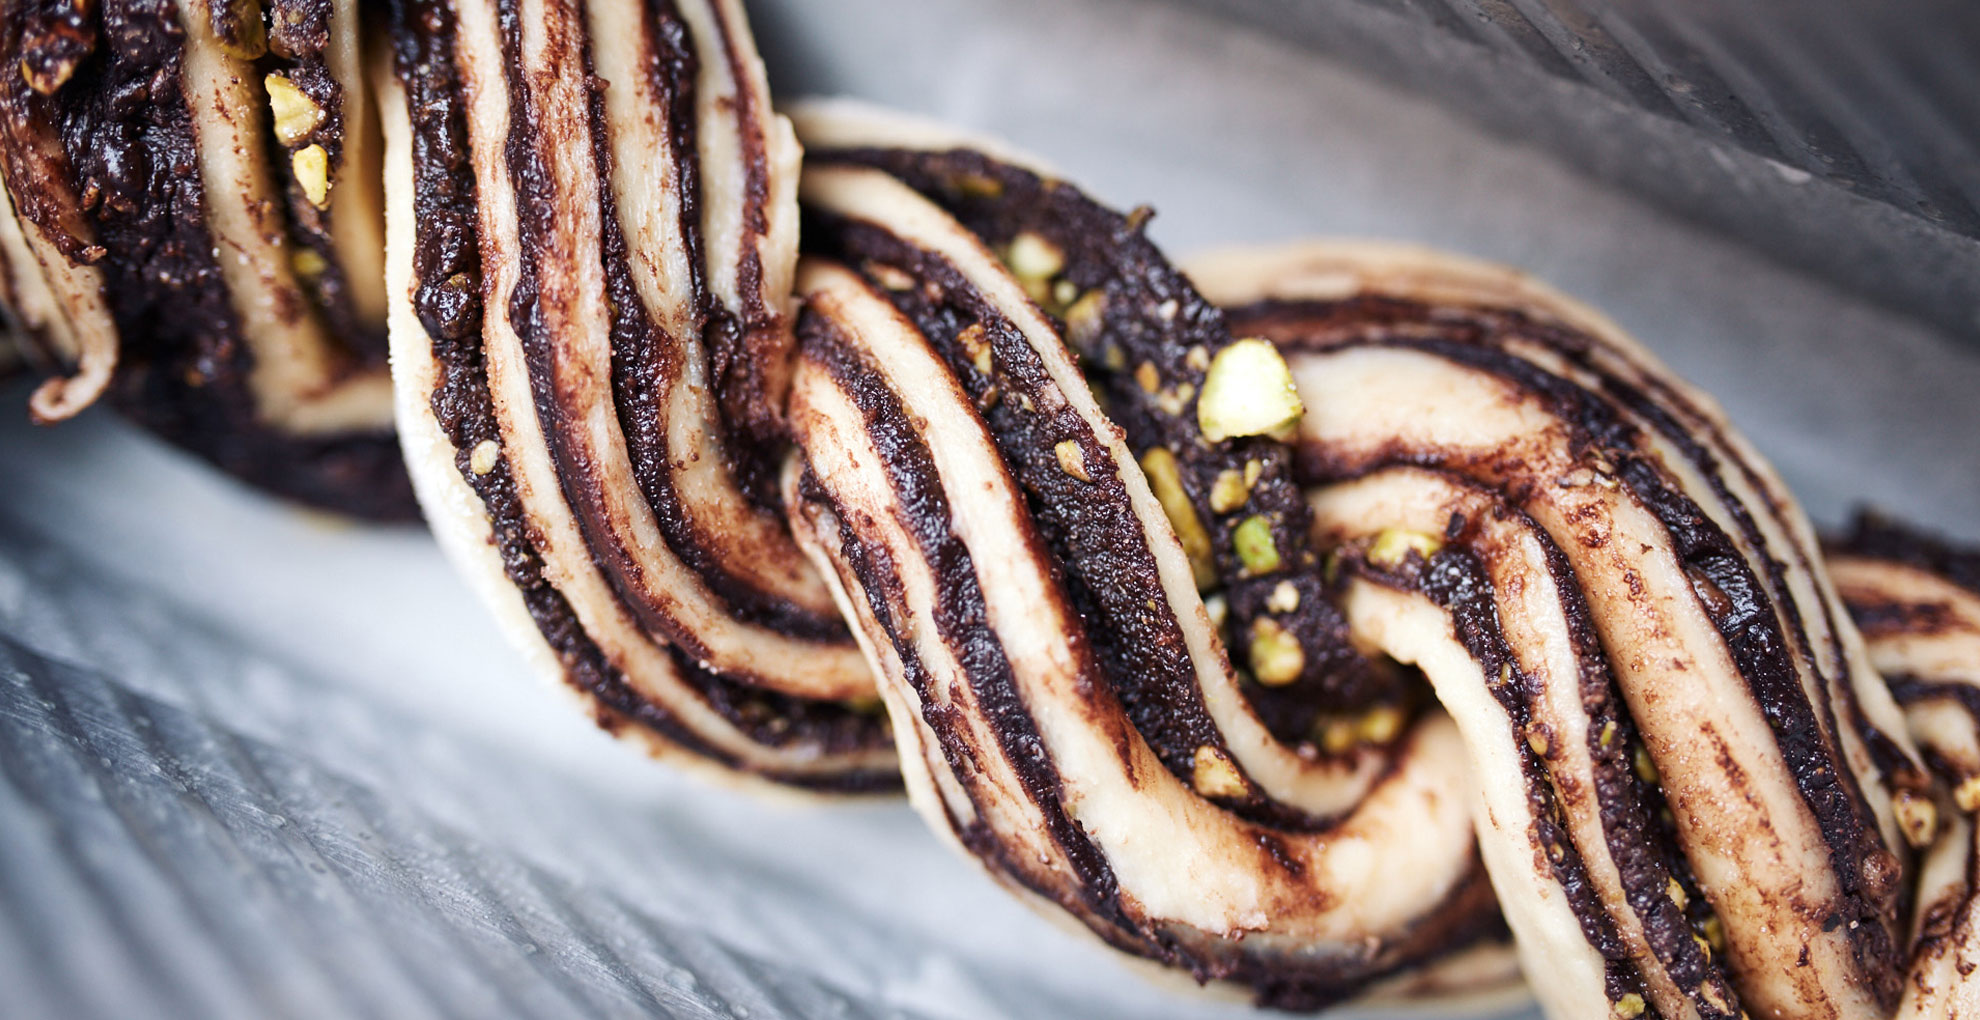 chocolate-krantz-feature-image